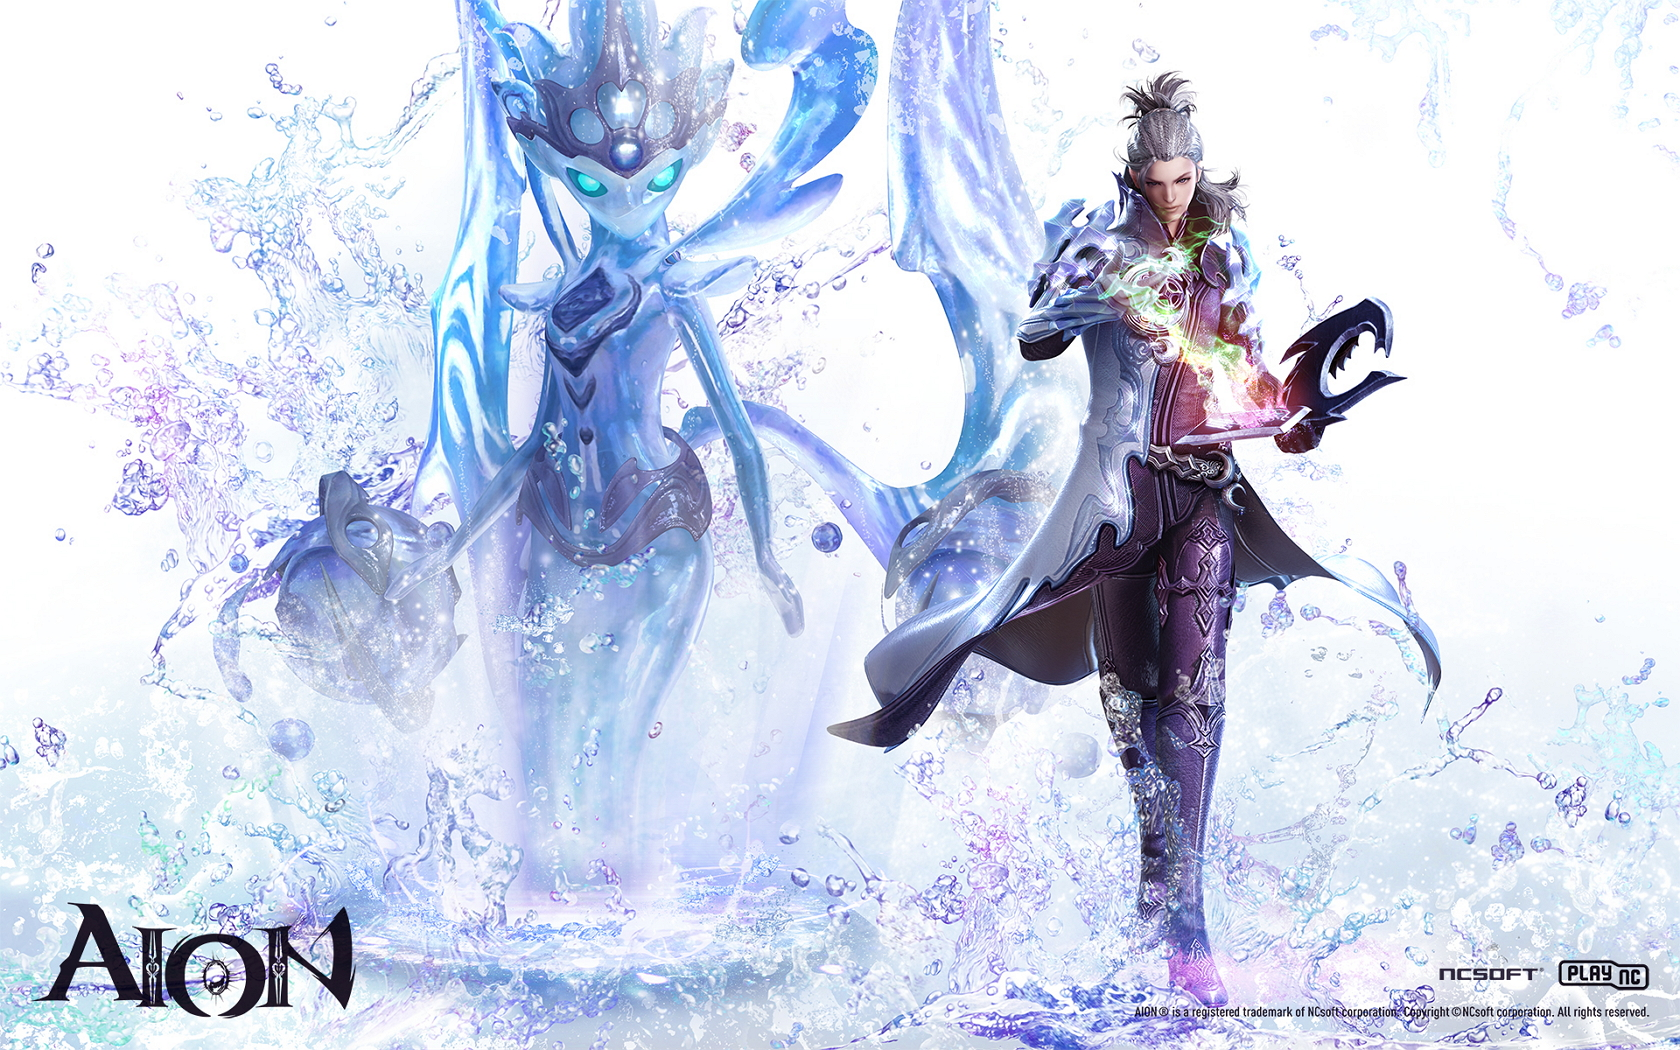 aion desktop wallpaper